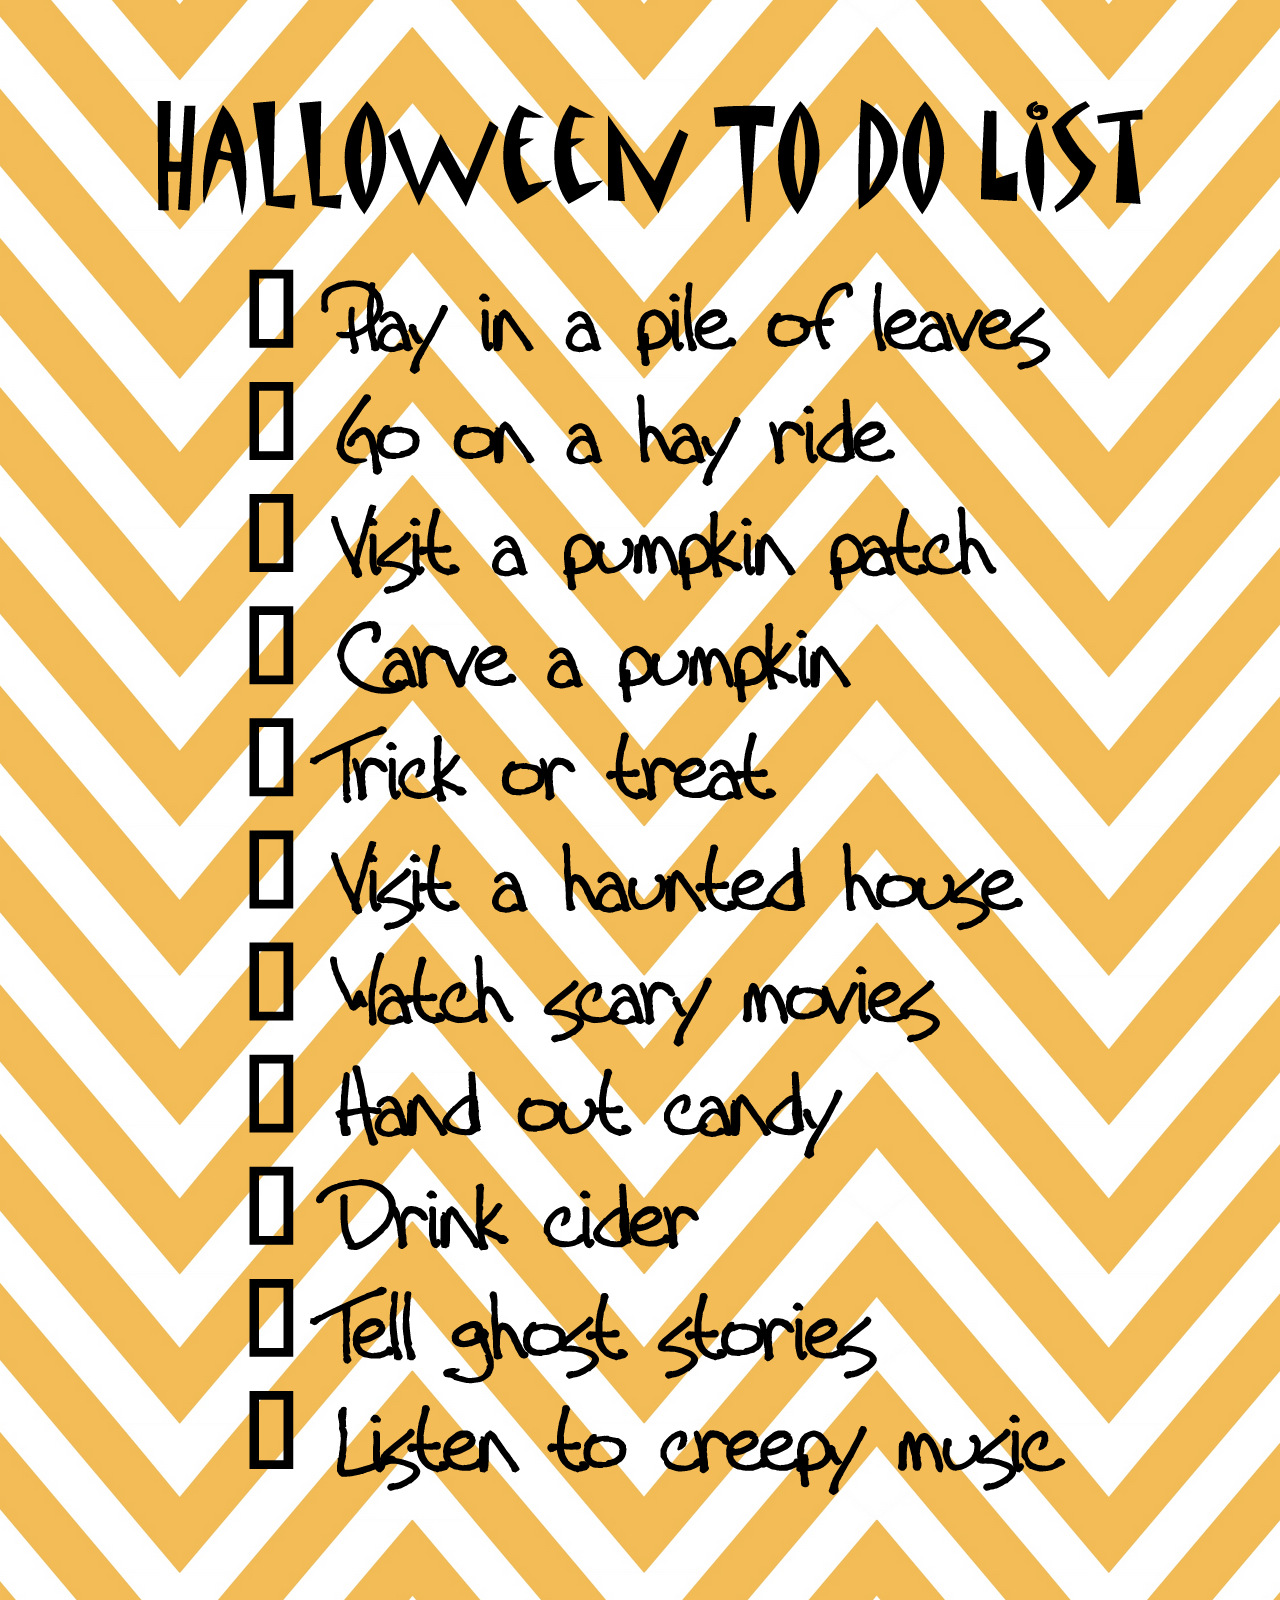 every little breeze seems to whisper louise: halloween to do list